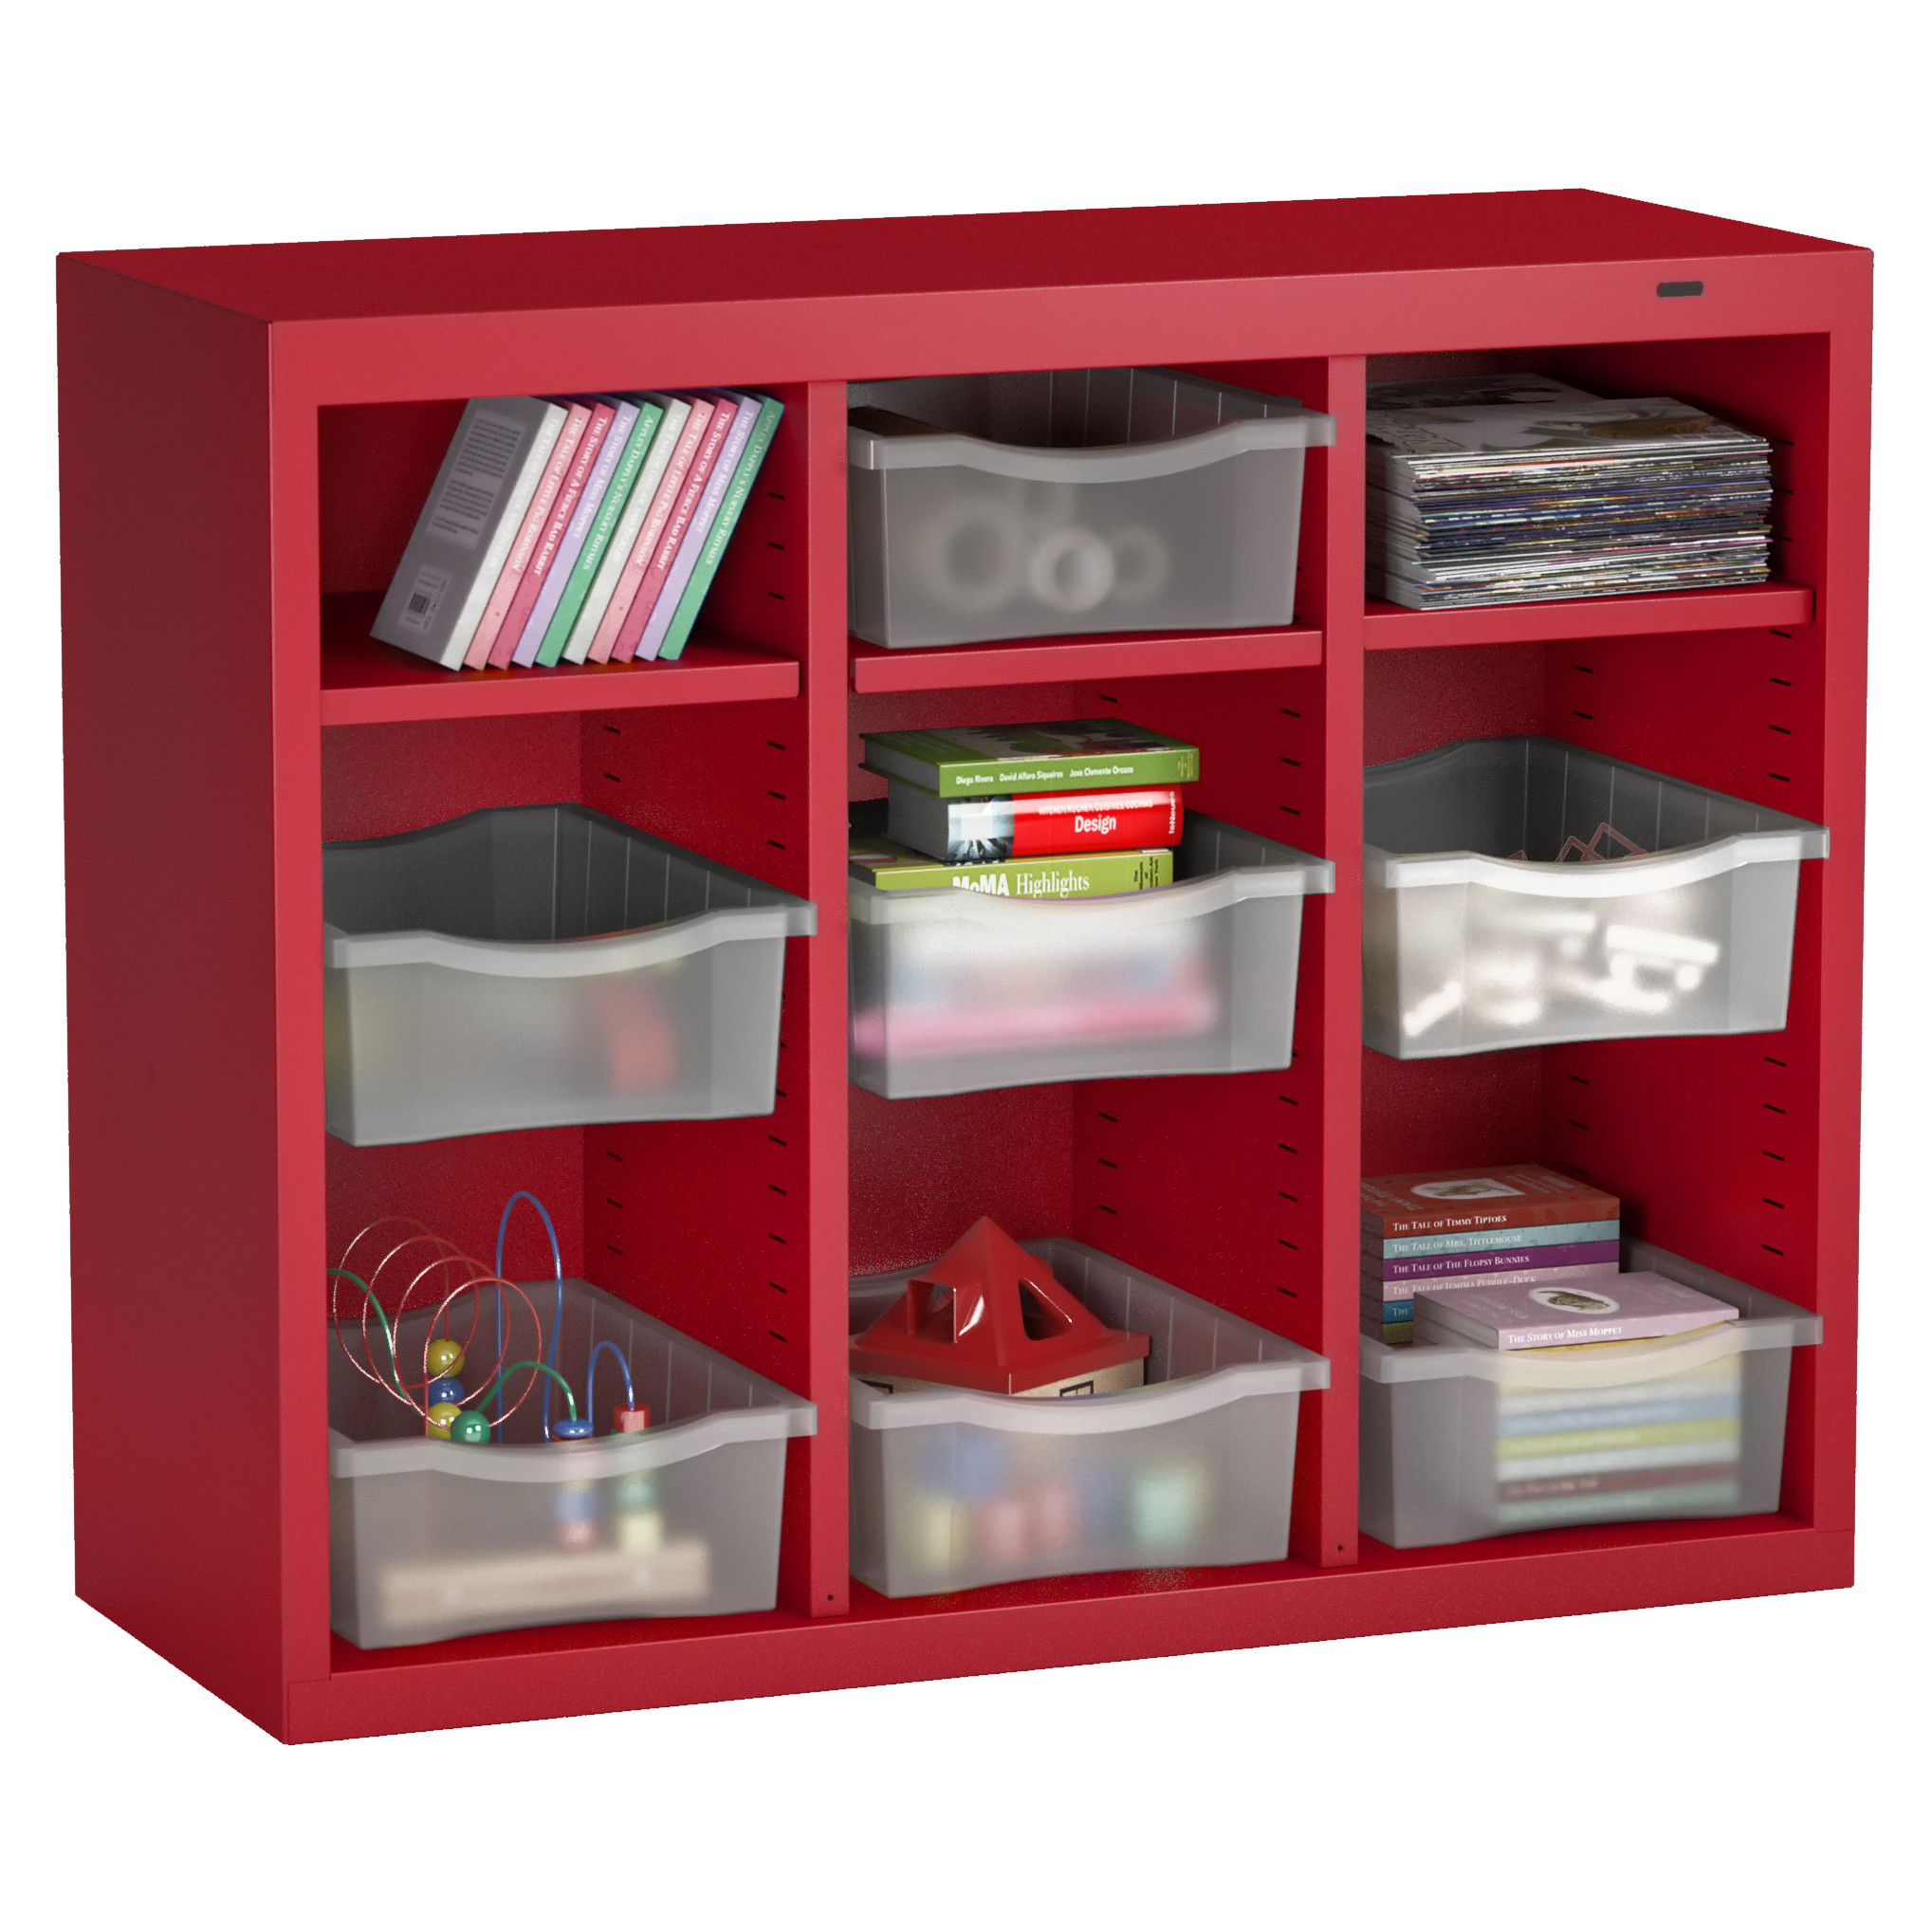 Tennsco CC-30 Cubby Locker